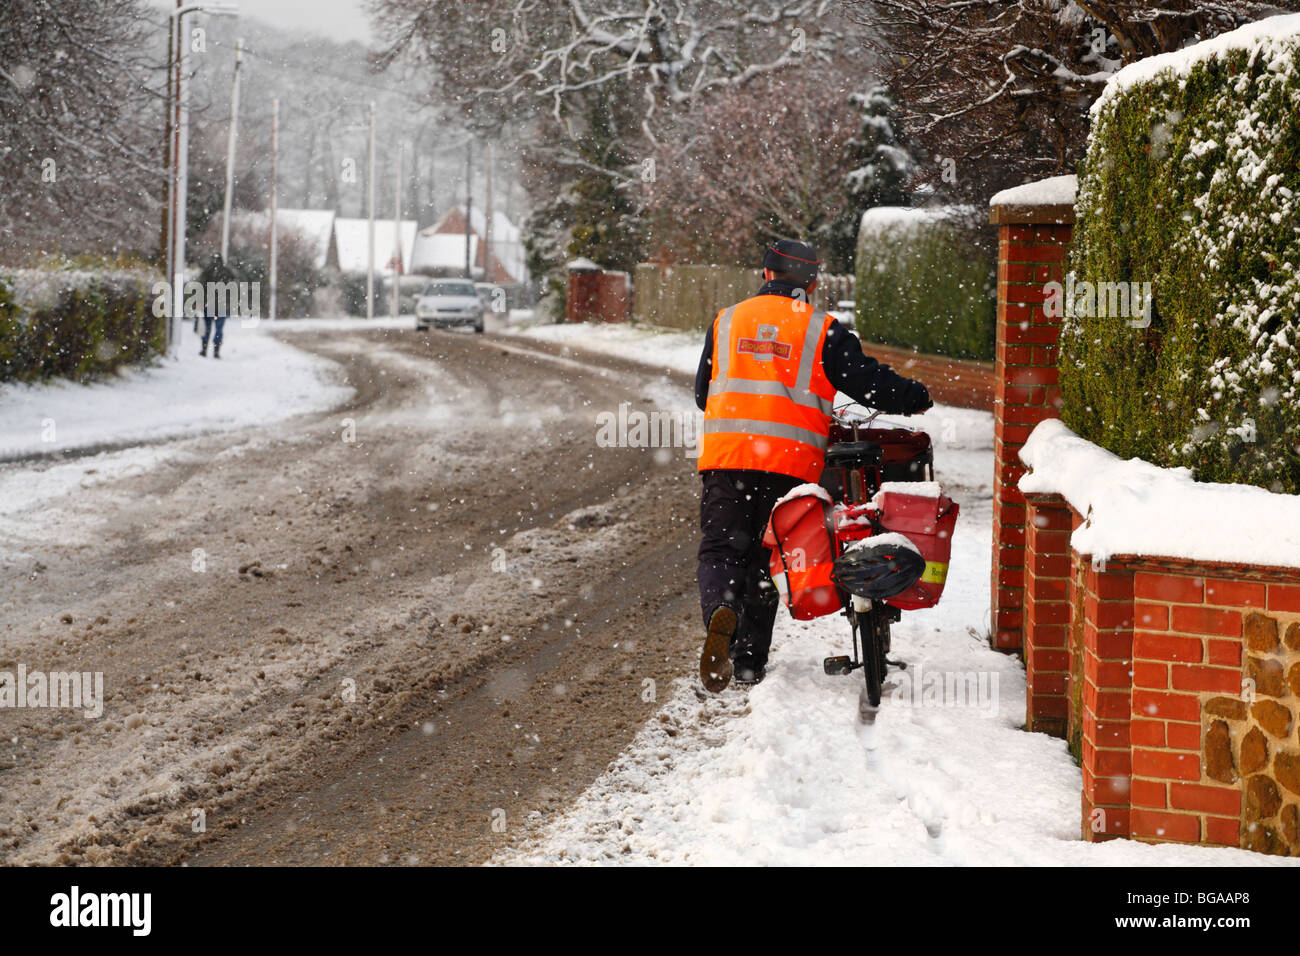 A postman struggles through the snow with his bicycle to deliver the Christmas post. - Stock Image